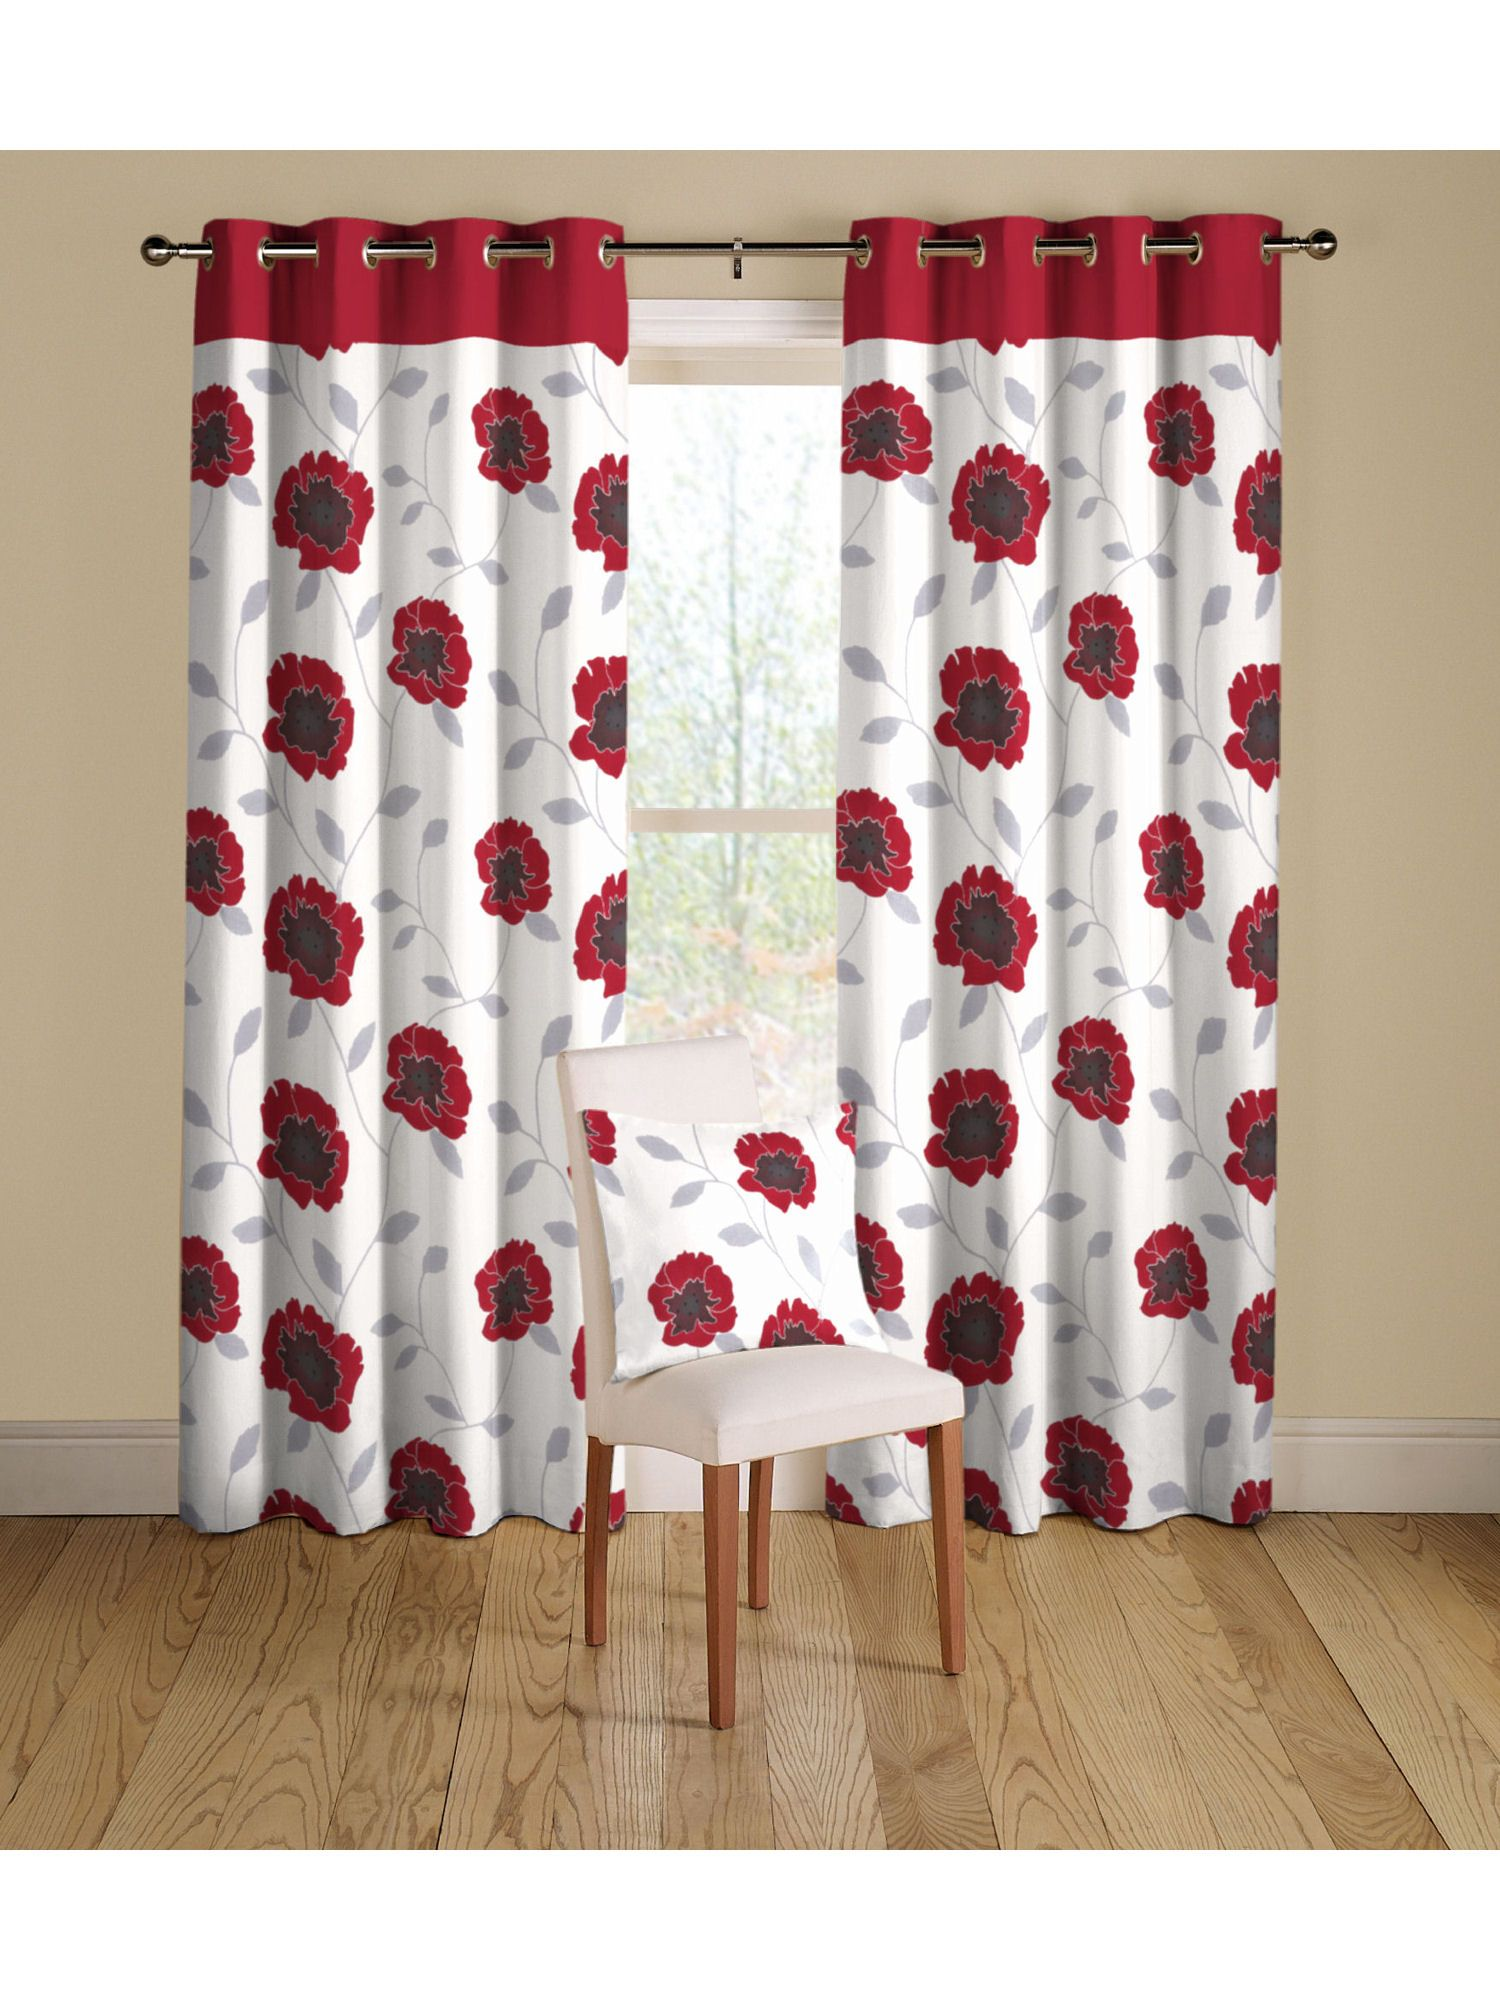 Rectella poppy curtains in red